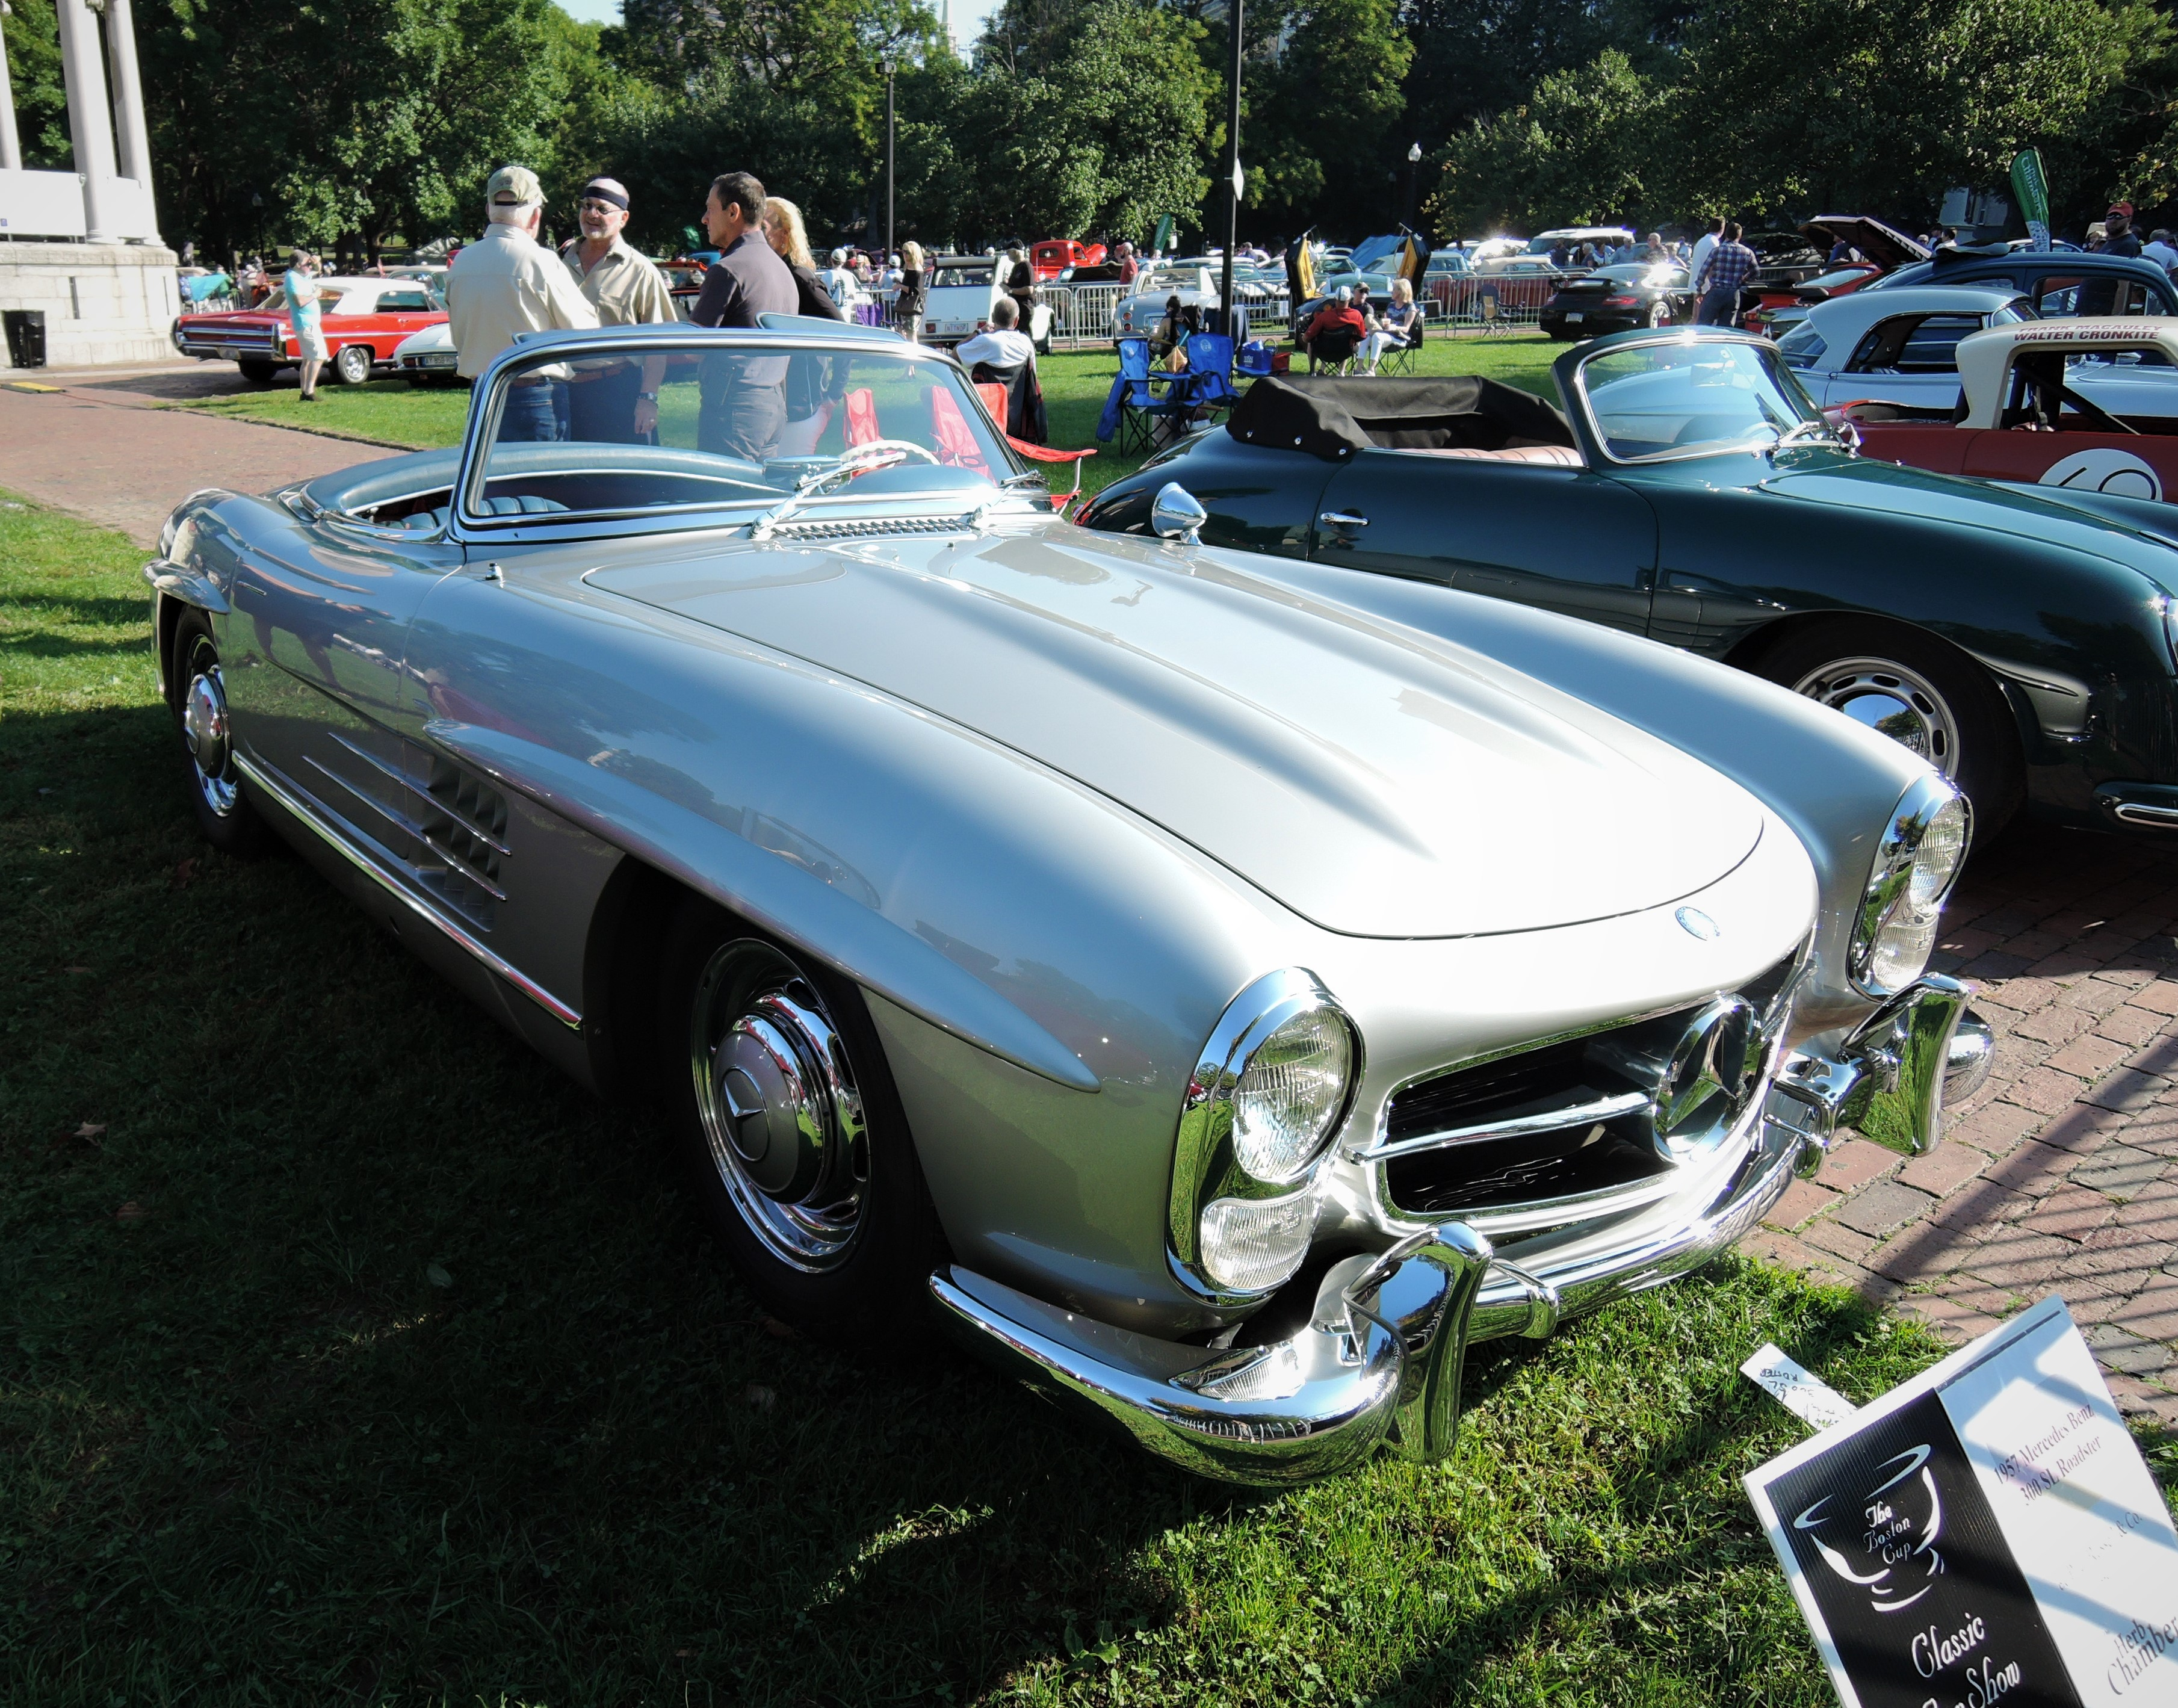 silver 1957 Mercedes-Benz 300 SL Roadster - The Boston Cup 2017